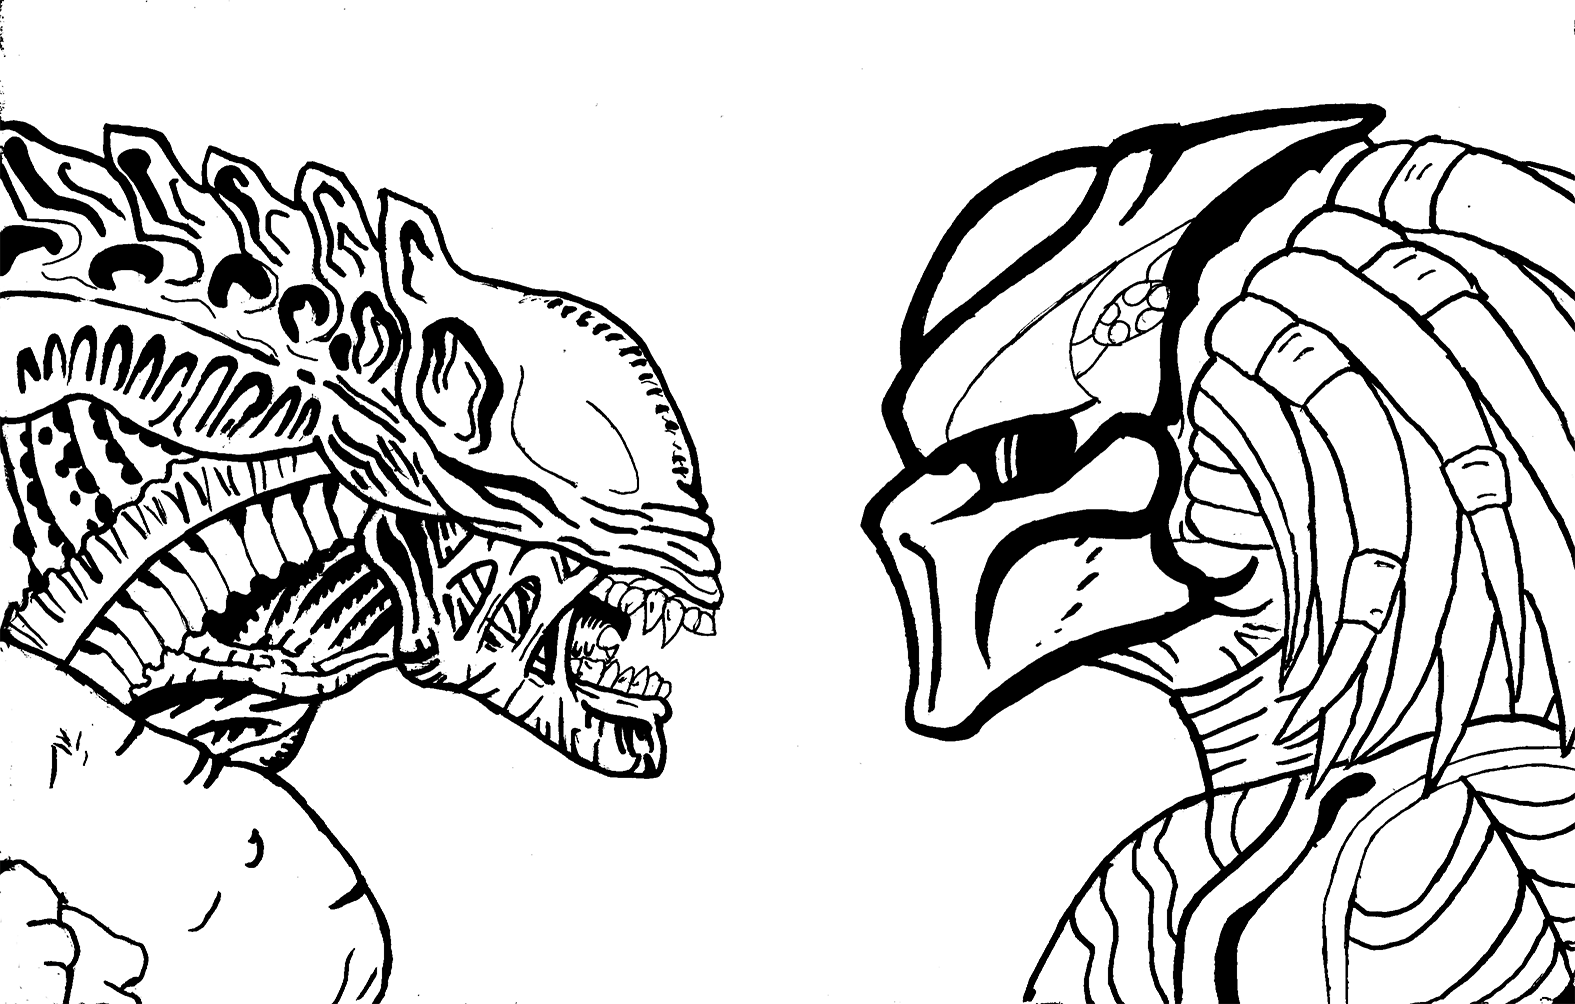 aliens vs predator drawings wwwimgkidcom the image